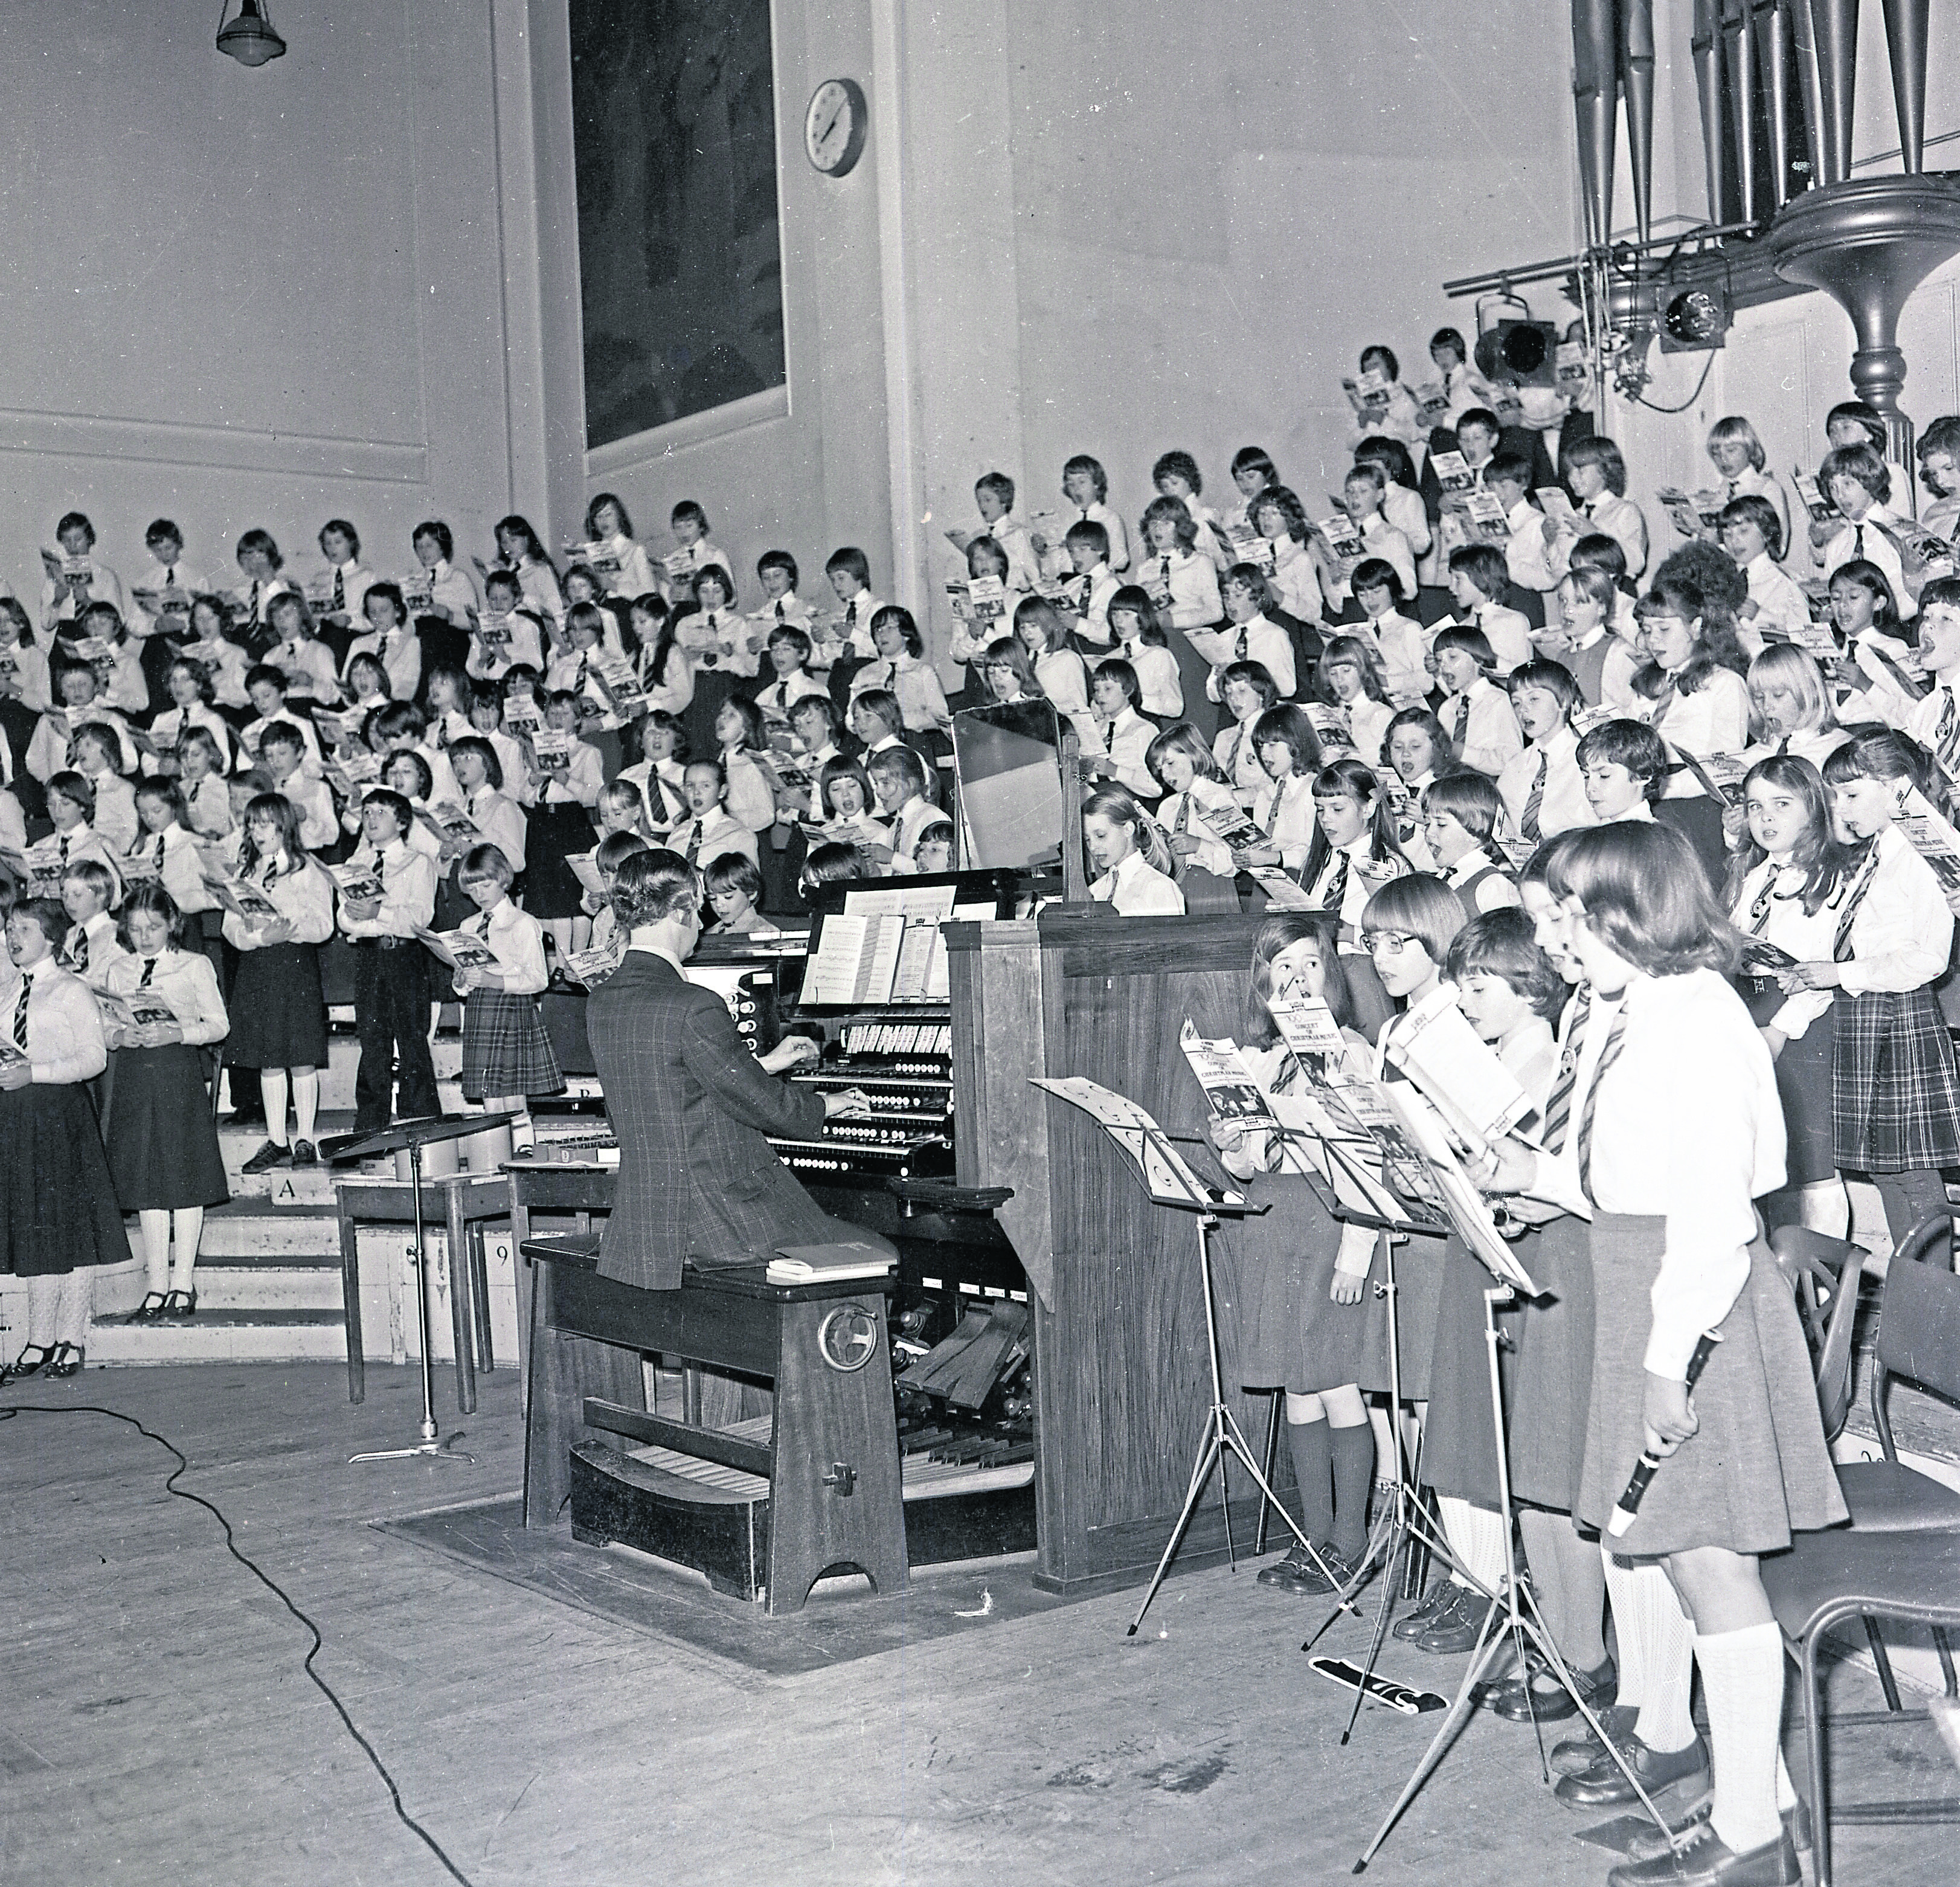 1979: An organist leading massed choirs at the 1979 carol concert show